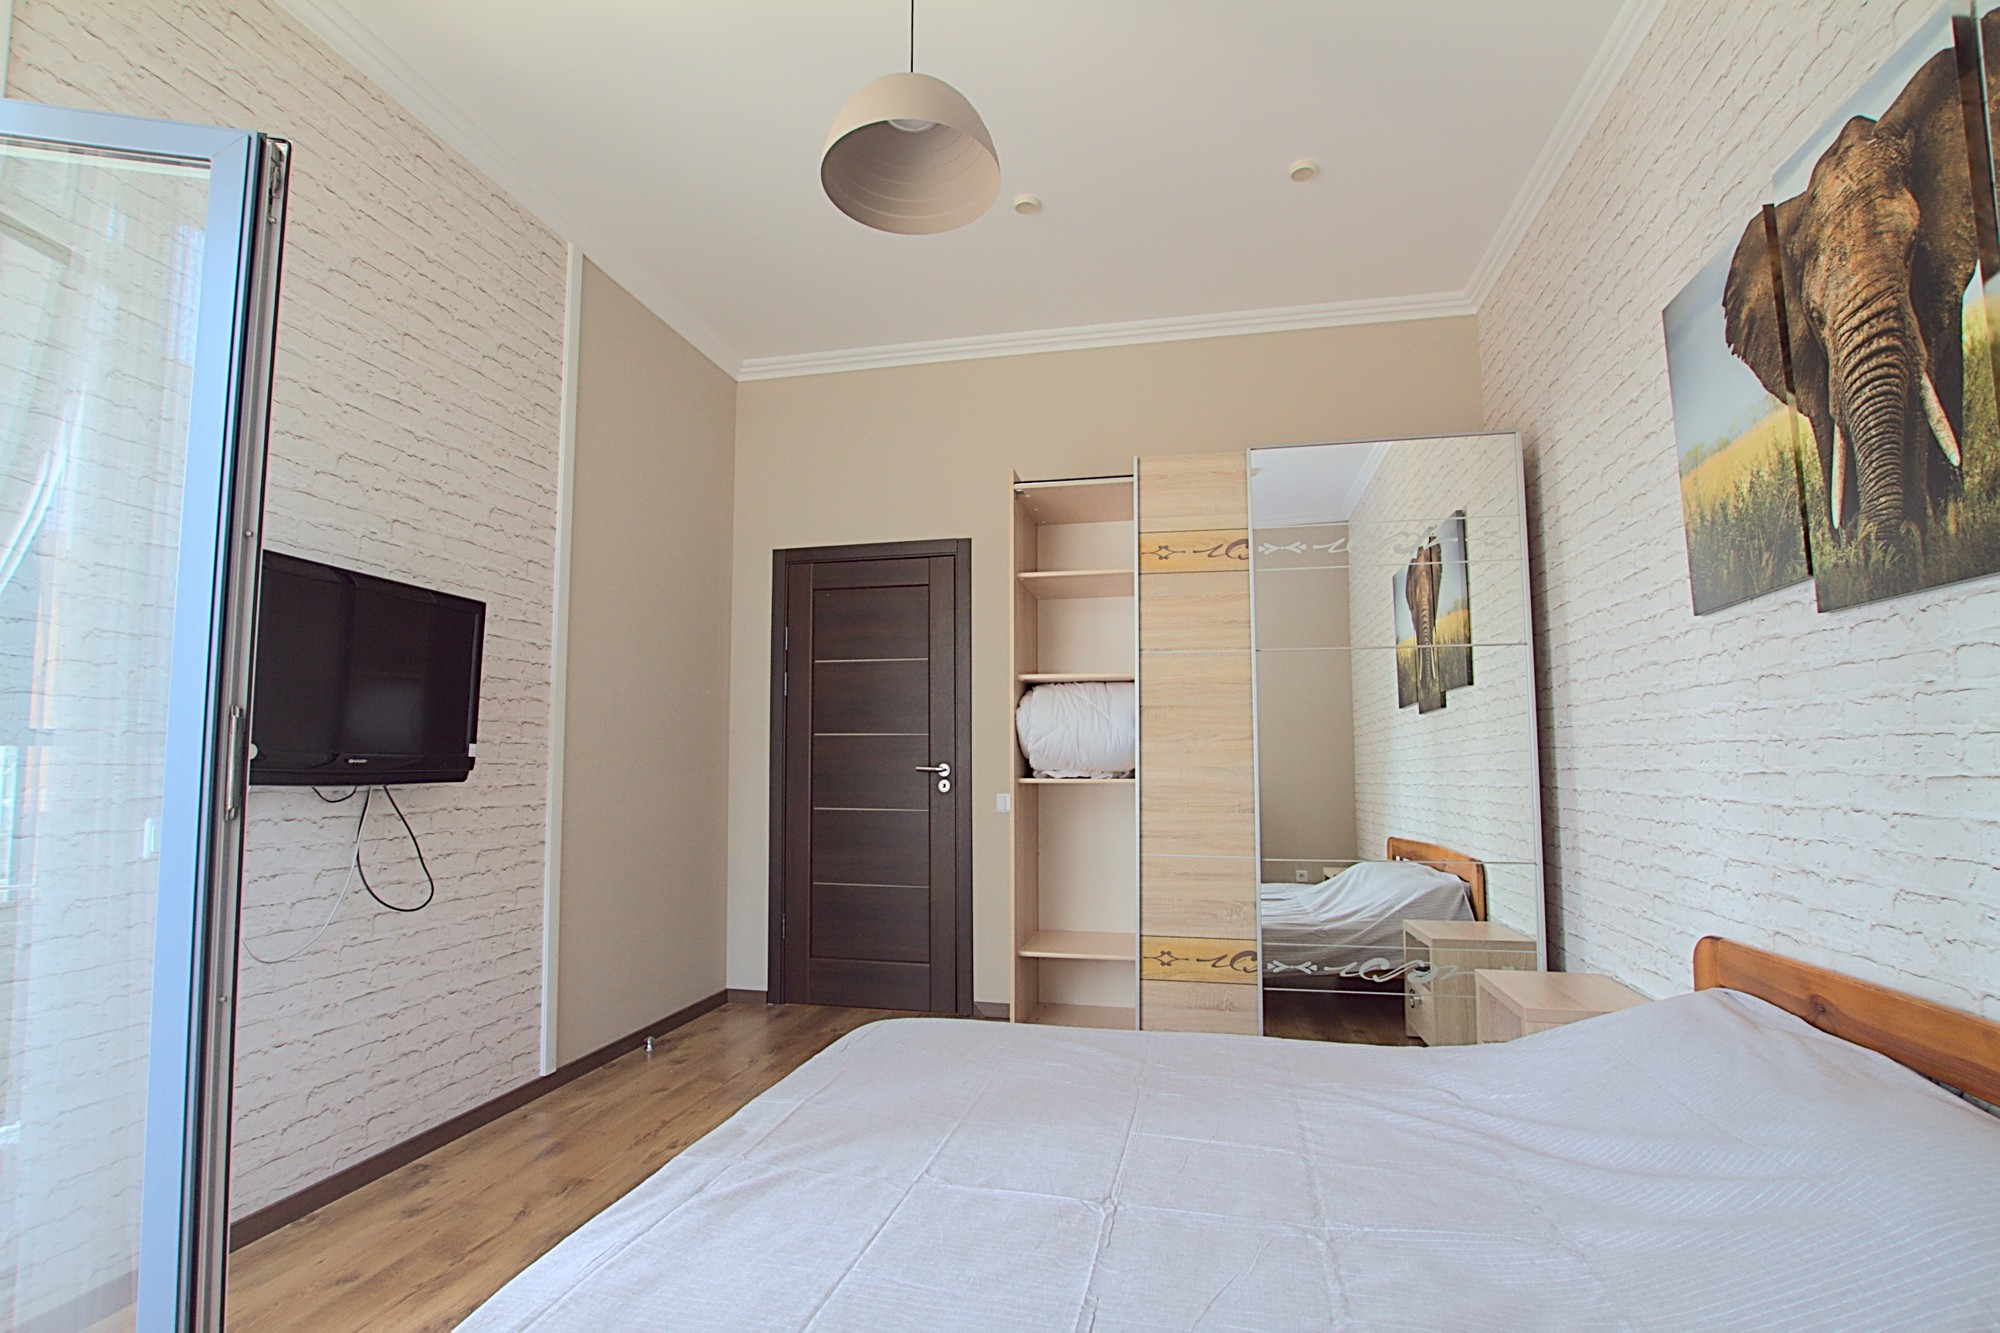 Rent_Apartment_in_Chisinau_at_Colisem_04.jpg